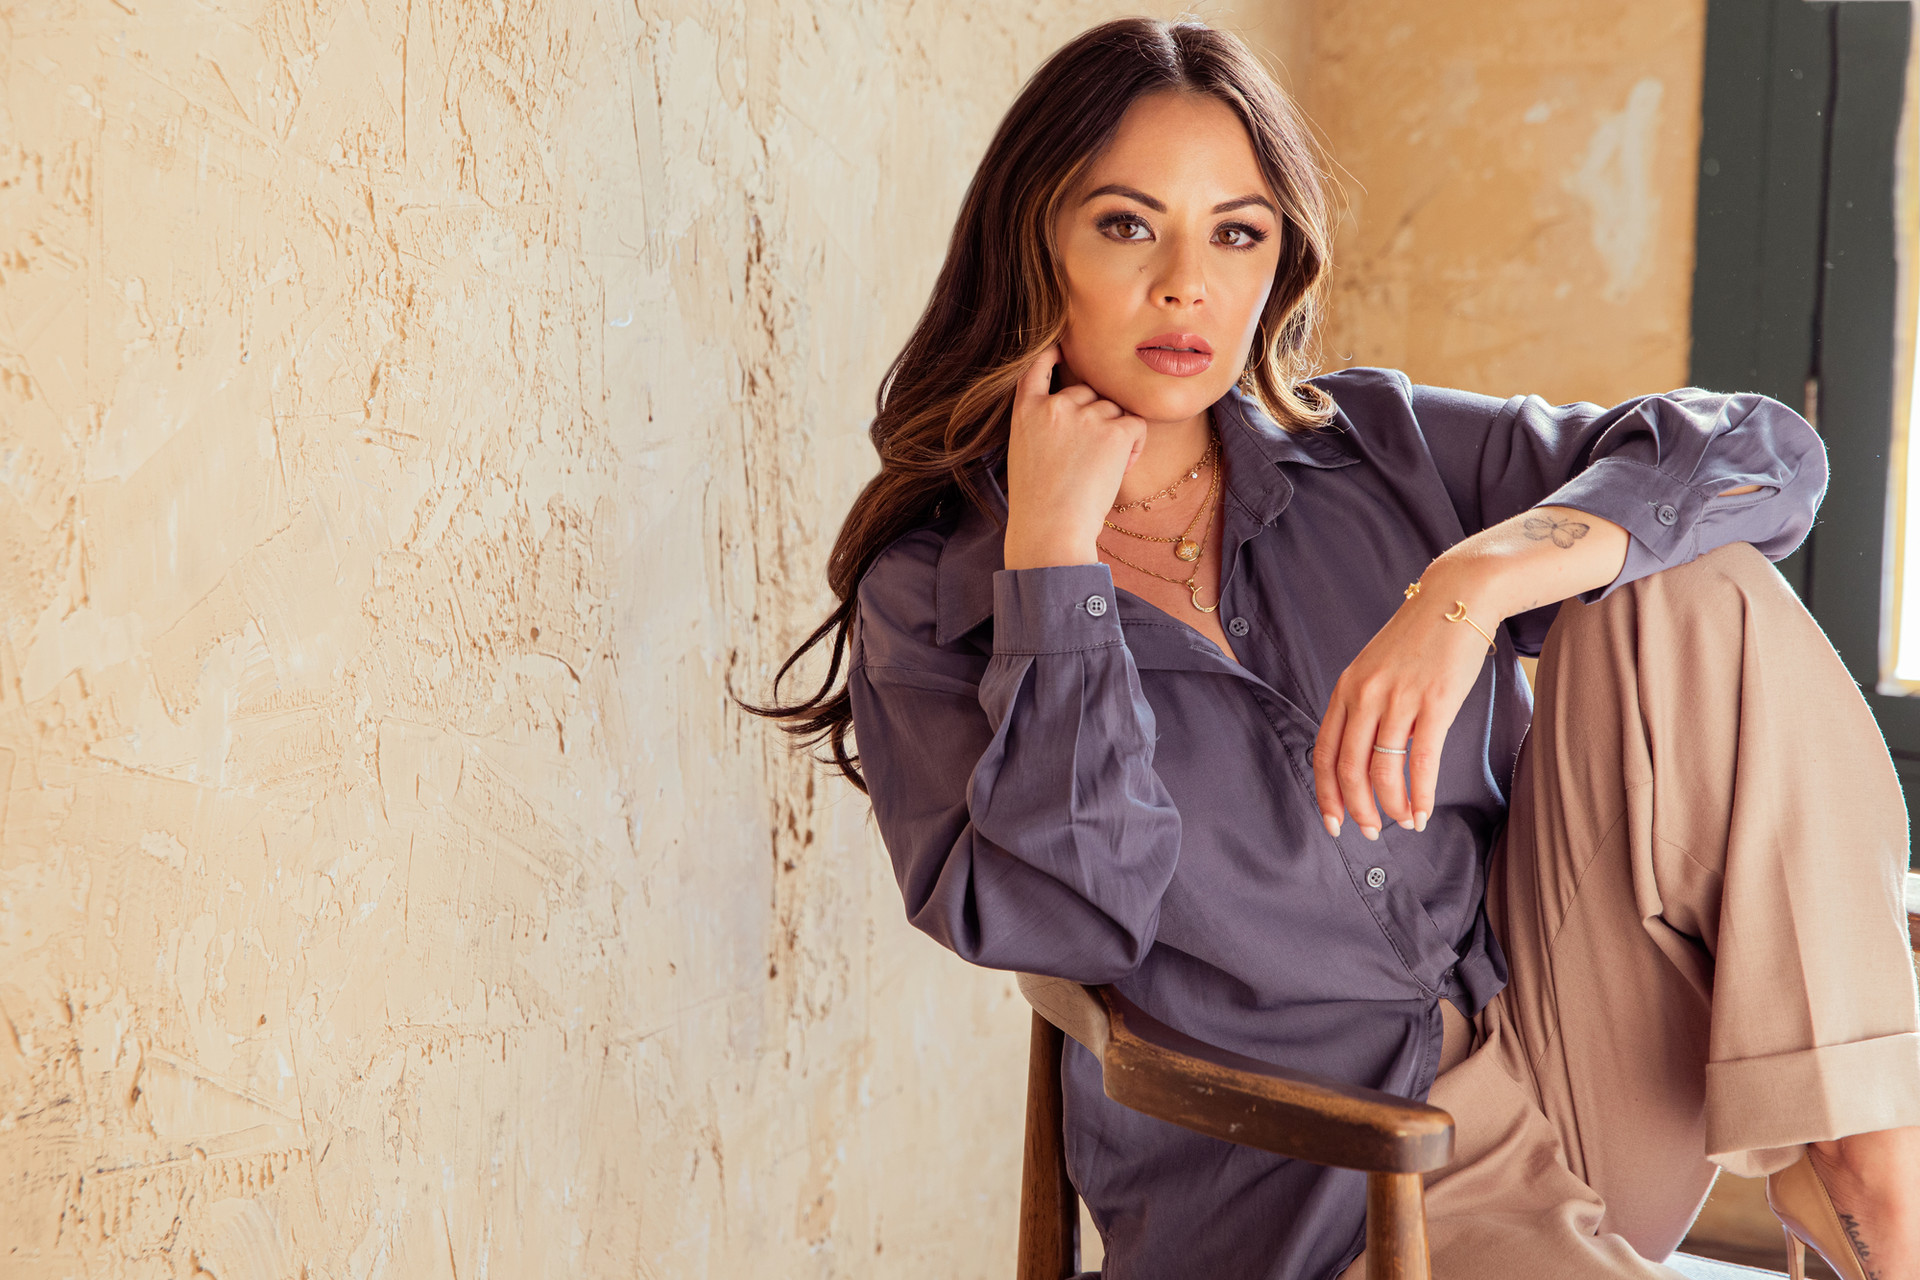 Janel Parrish X To The Stars